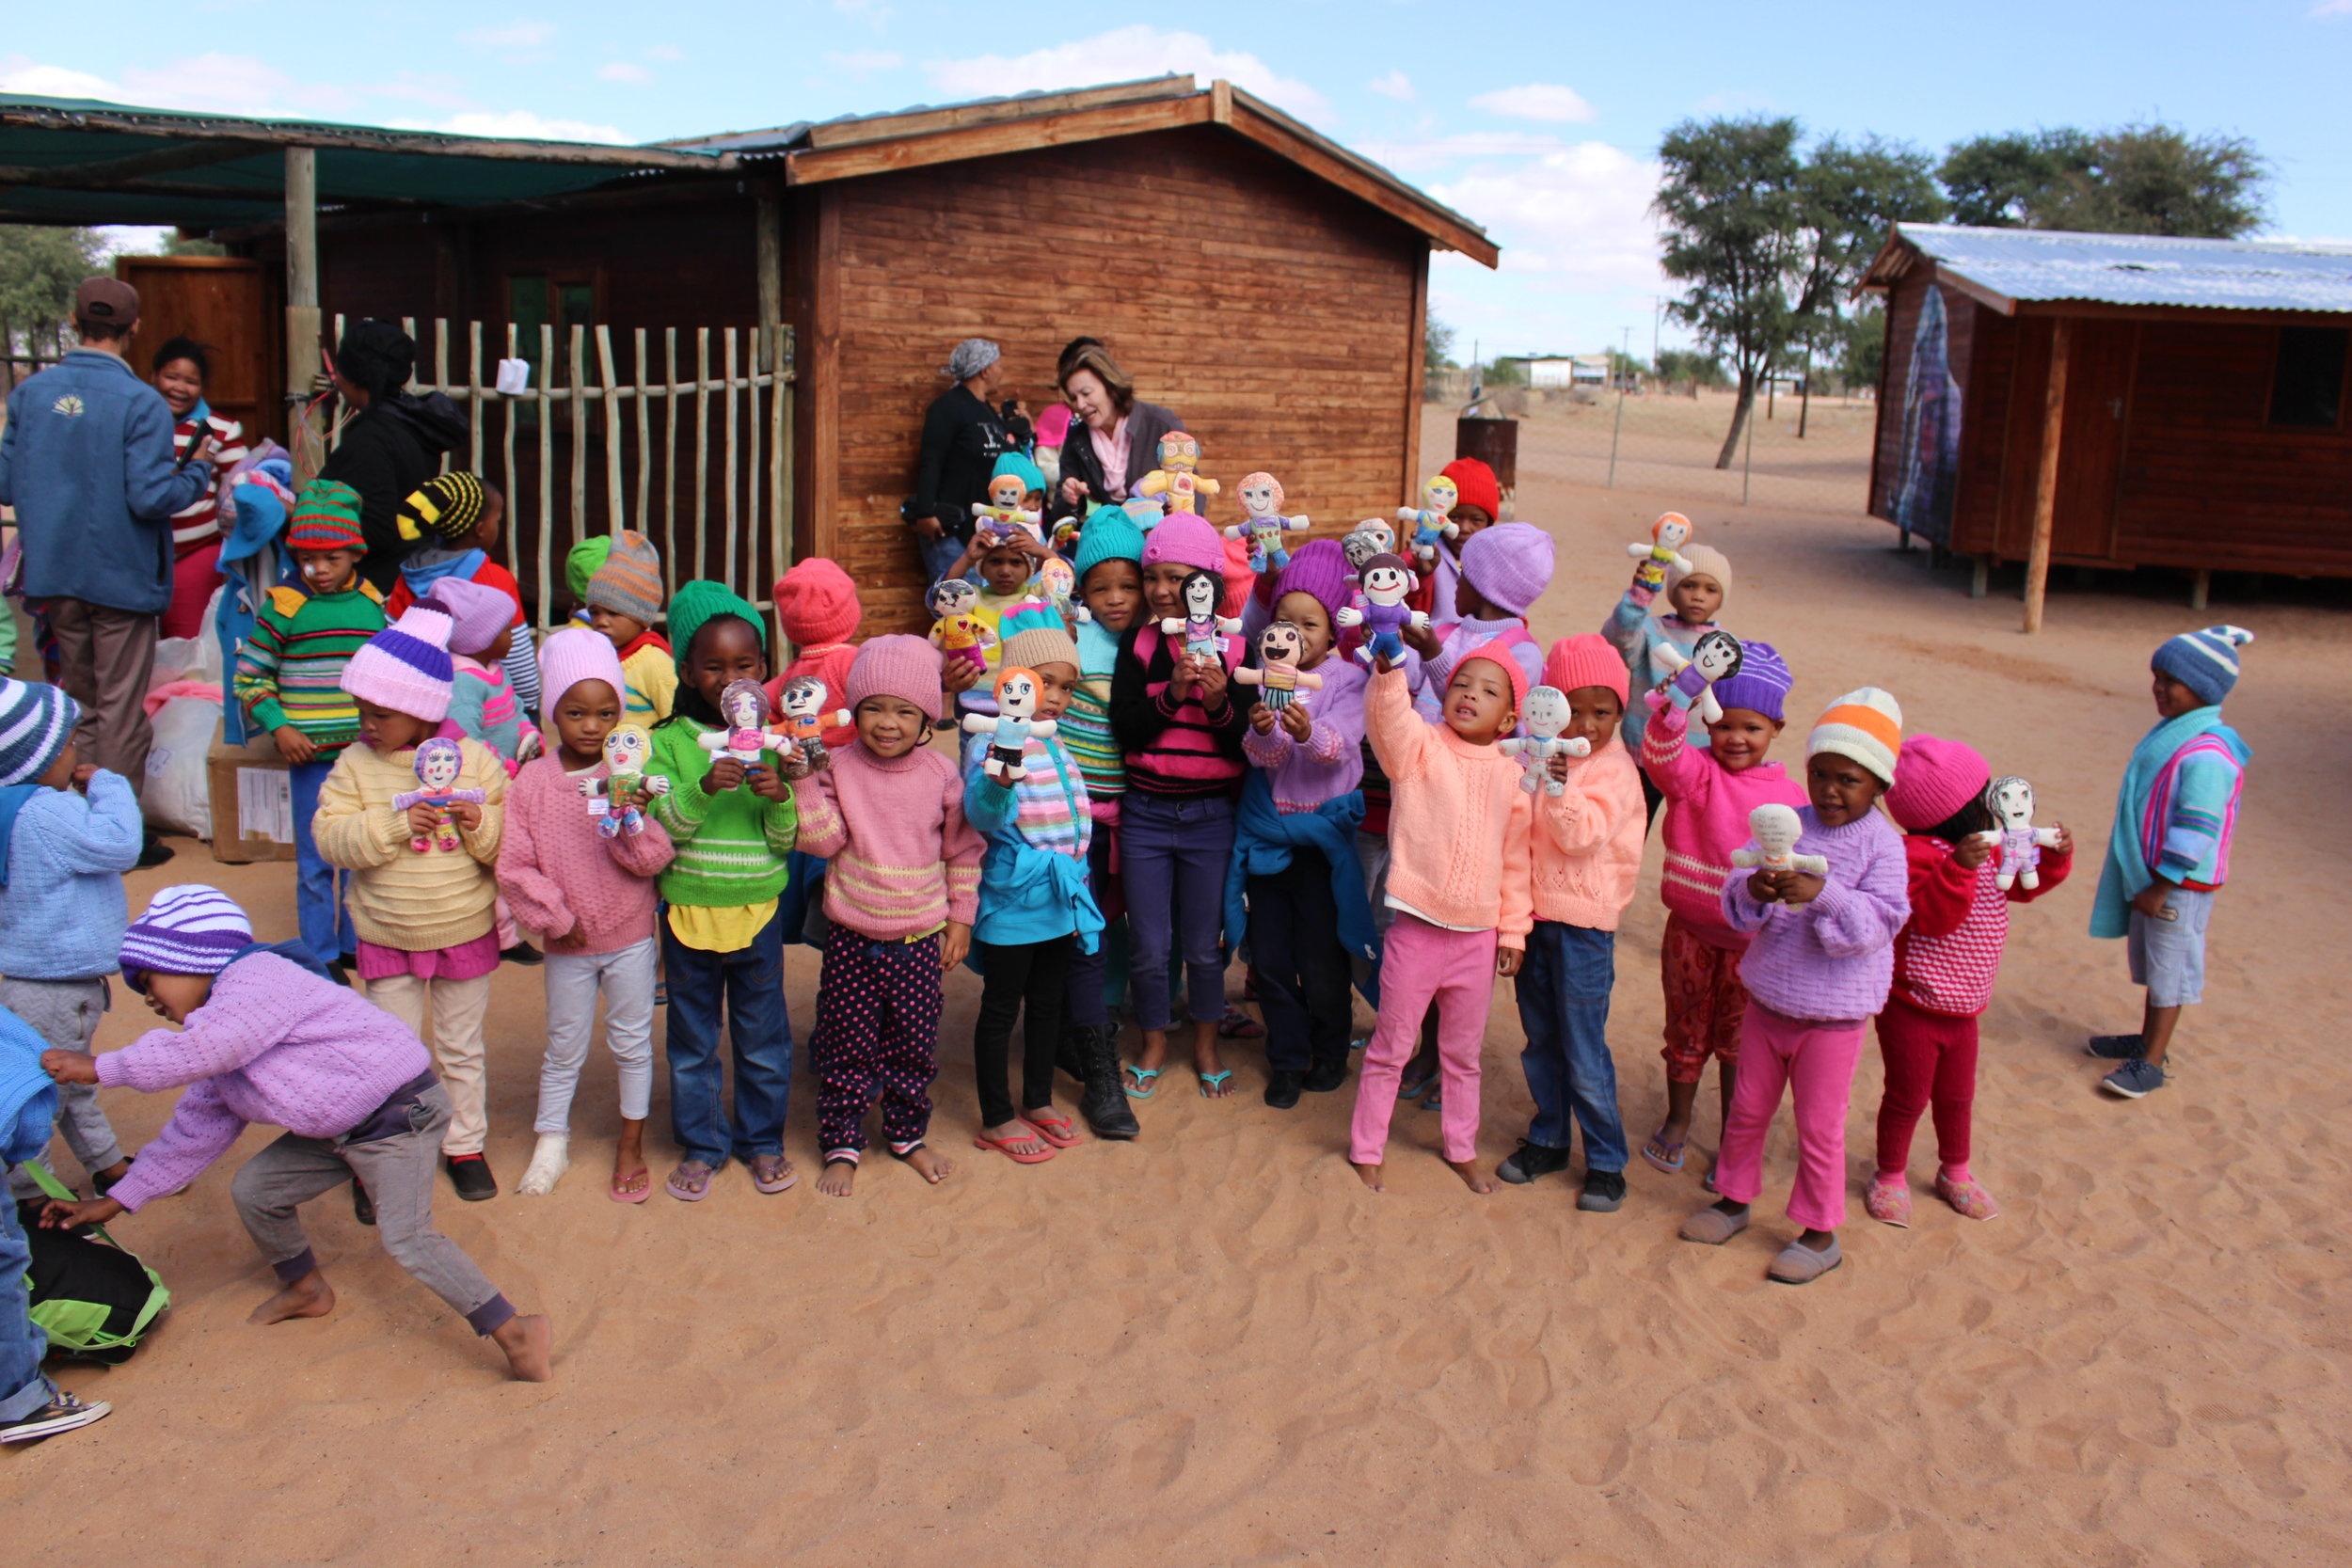 """Happy Monday!!  Don't have to say much......Just take a moment to  see their smiles!   We are very grateful to collaborate with  Sesego Cares in South Africa. This was a part of our """"BIG"""" campaign and we managed to send 50 dolls to children who live in the desert.  Here is a quote from Sesego Cares:    This unique community is the oldest in the world, also one of the most special communities and people in our beautiful country. I thought it fitting for these members to receive the dolls. They stay in the desert.  Once again thanks for the amazing support. This was just brilliant and inspirational!"""